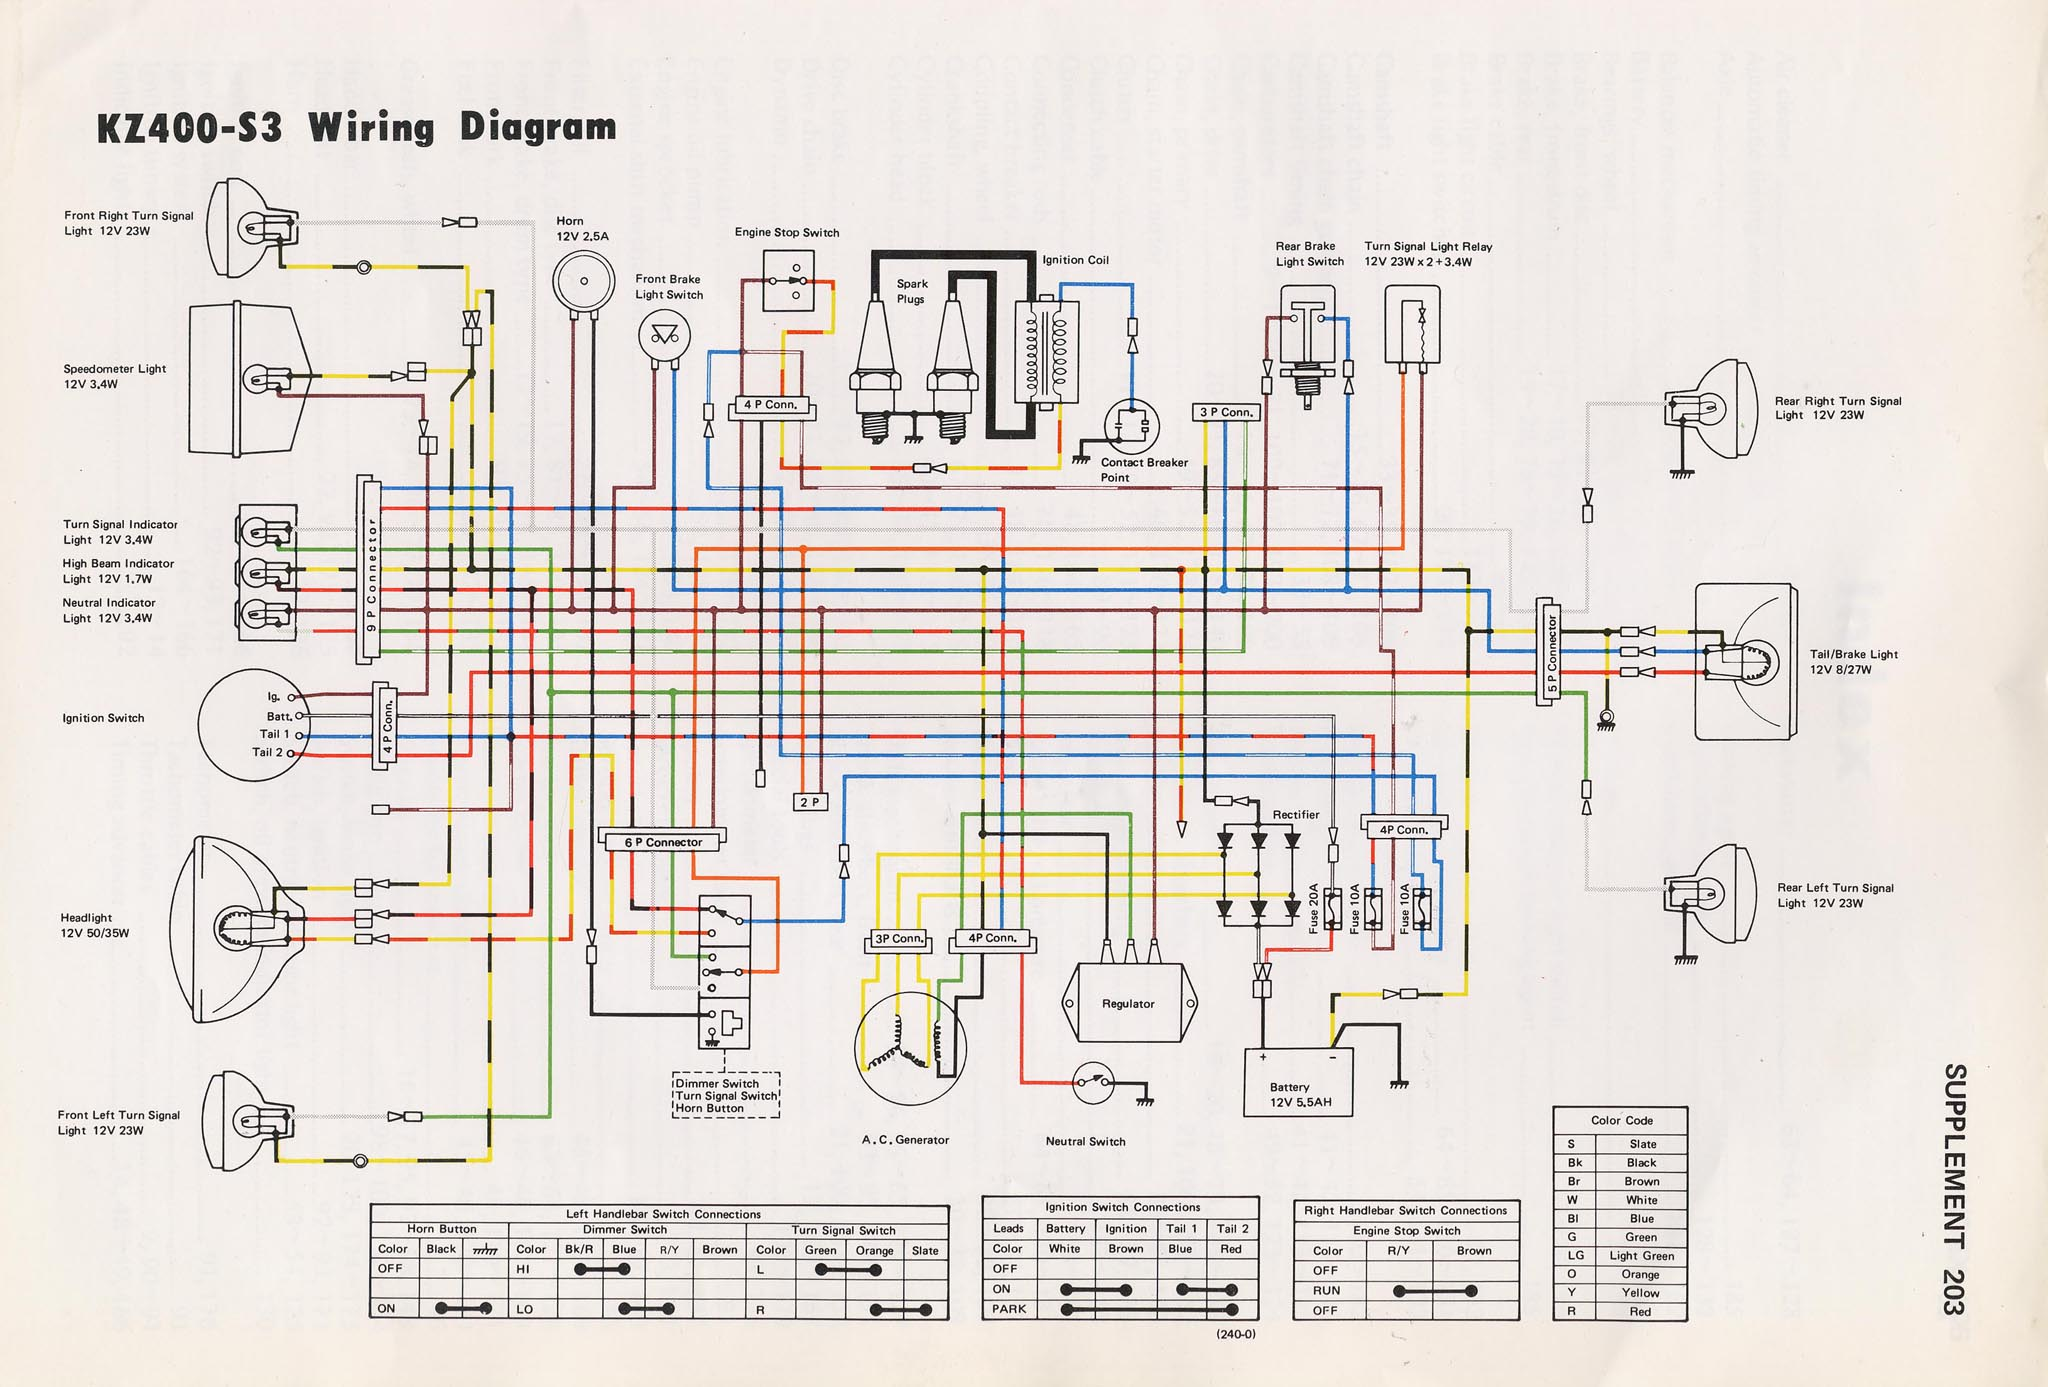 1976 Kawasaki Wiring Diagrams - basic electrical wiring theory on